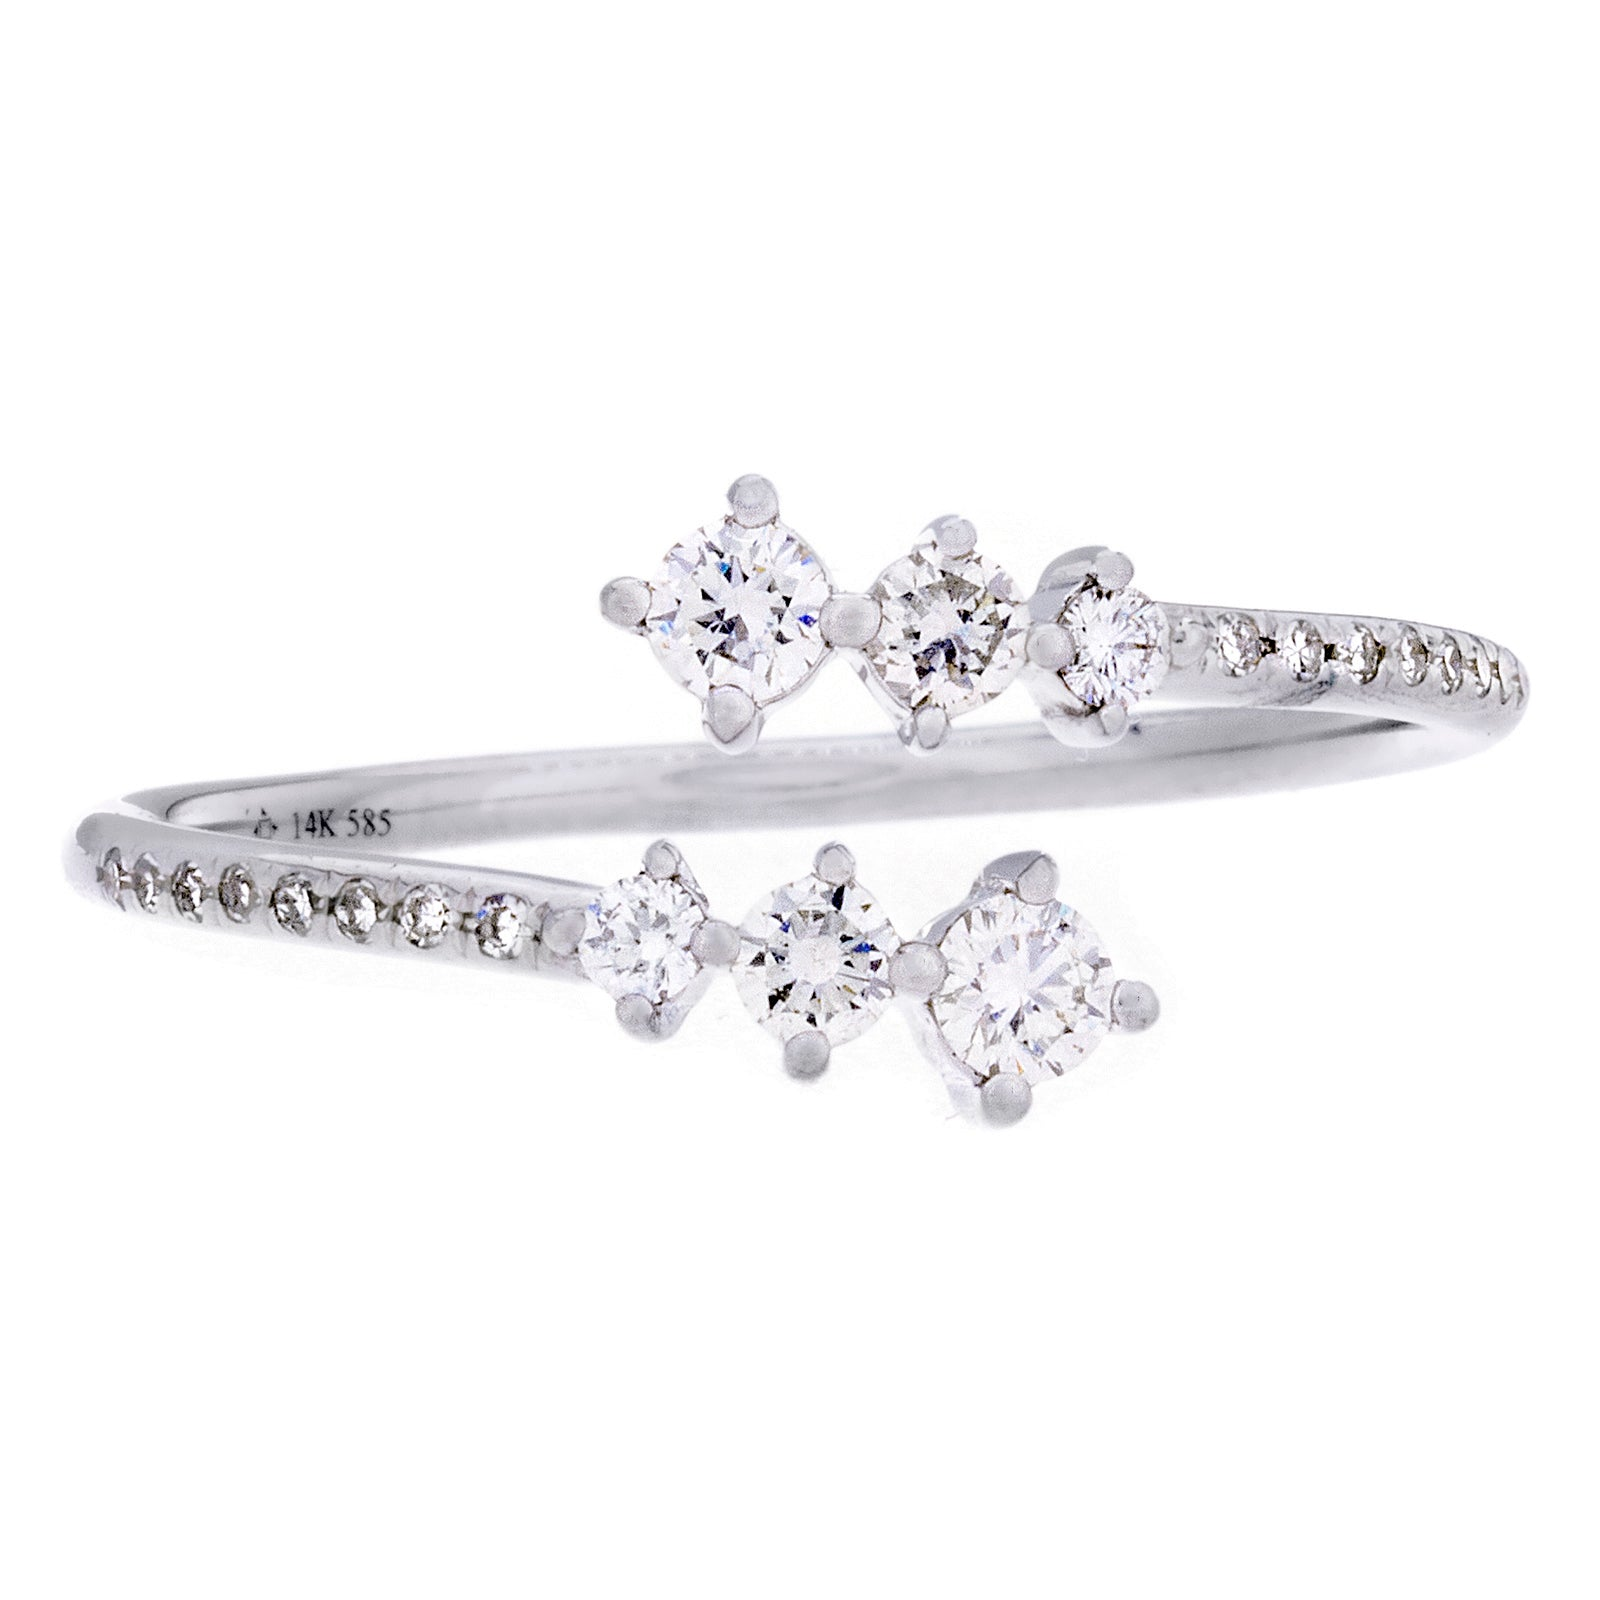 Diamonds & 14K White Open Ring - SOLD